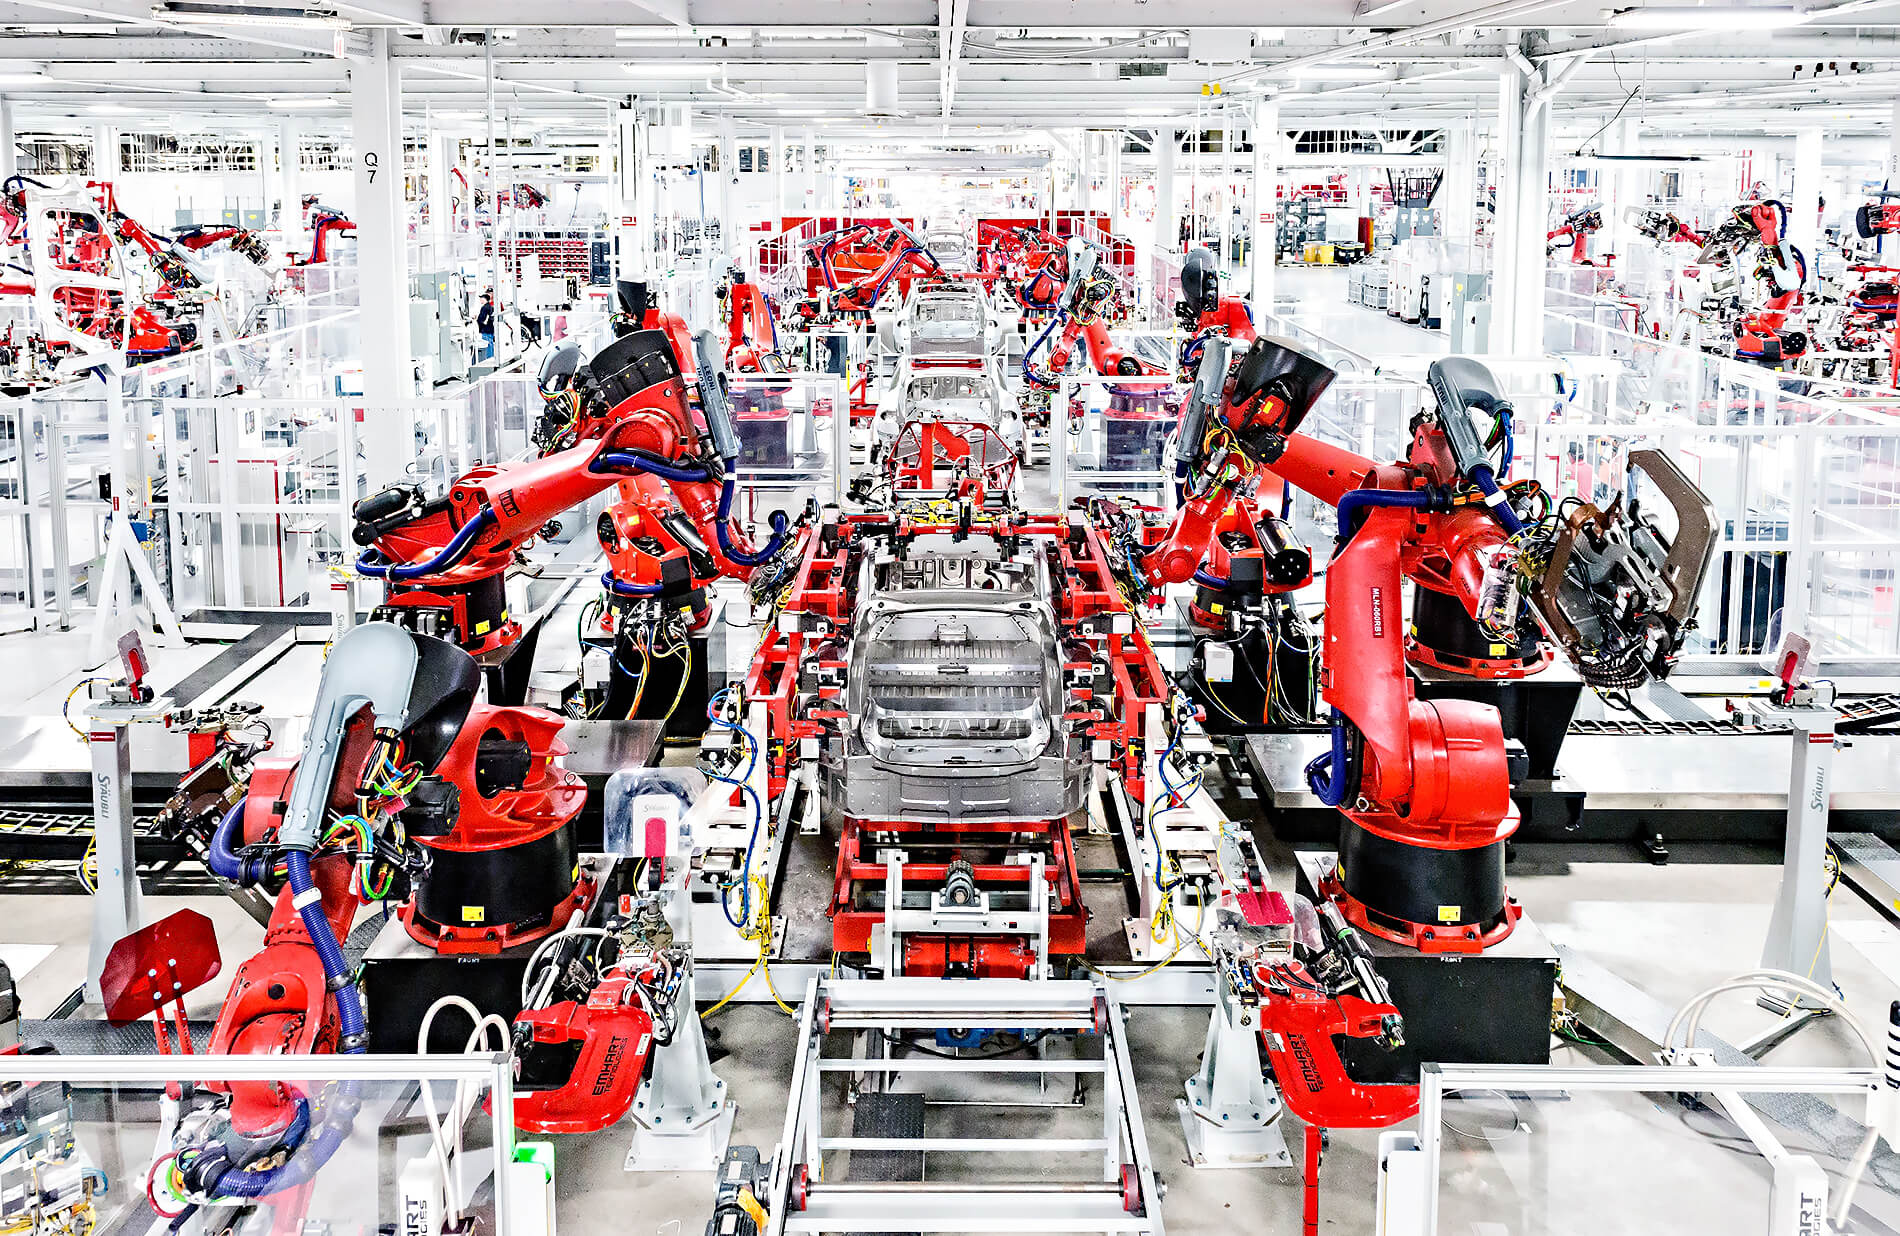 Robots assembling cars in the Tesla factory in Fremont, CA.